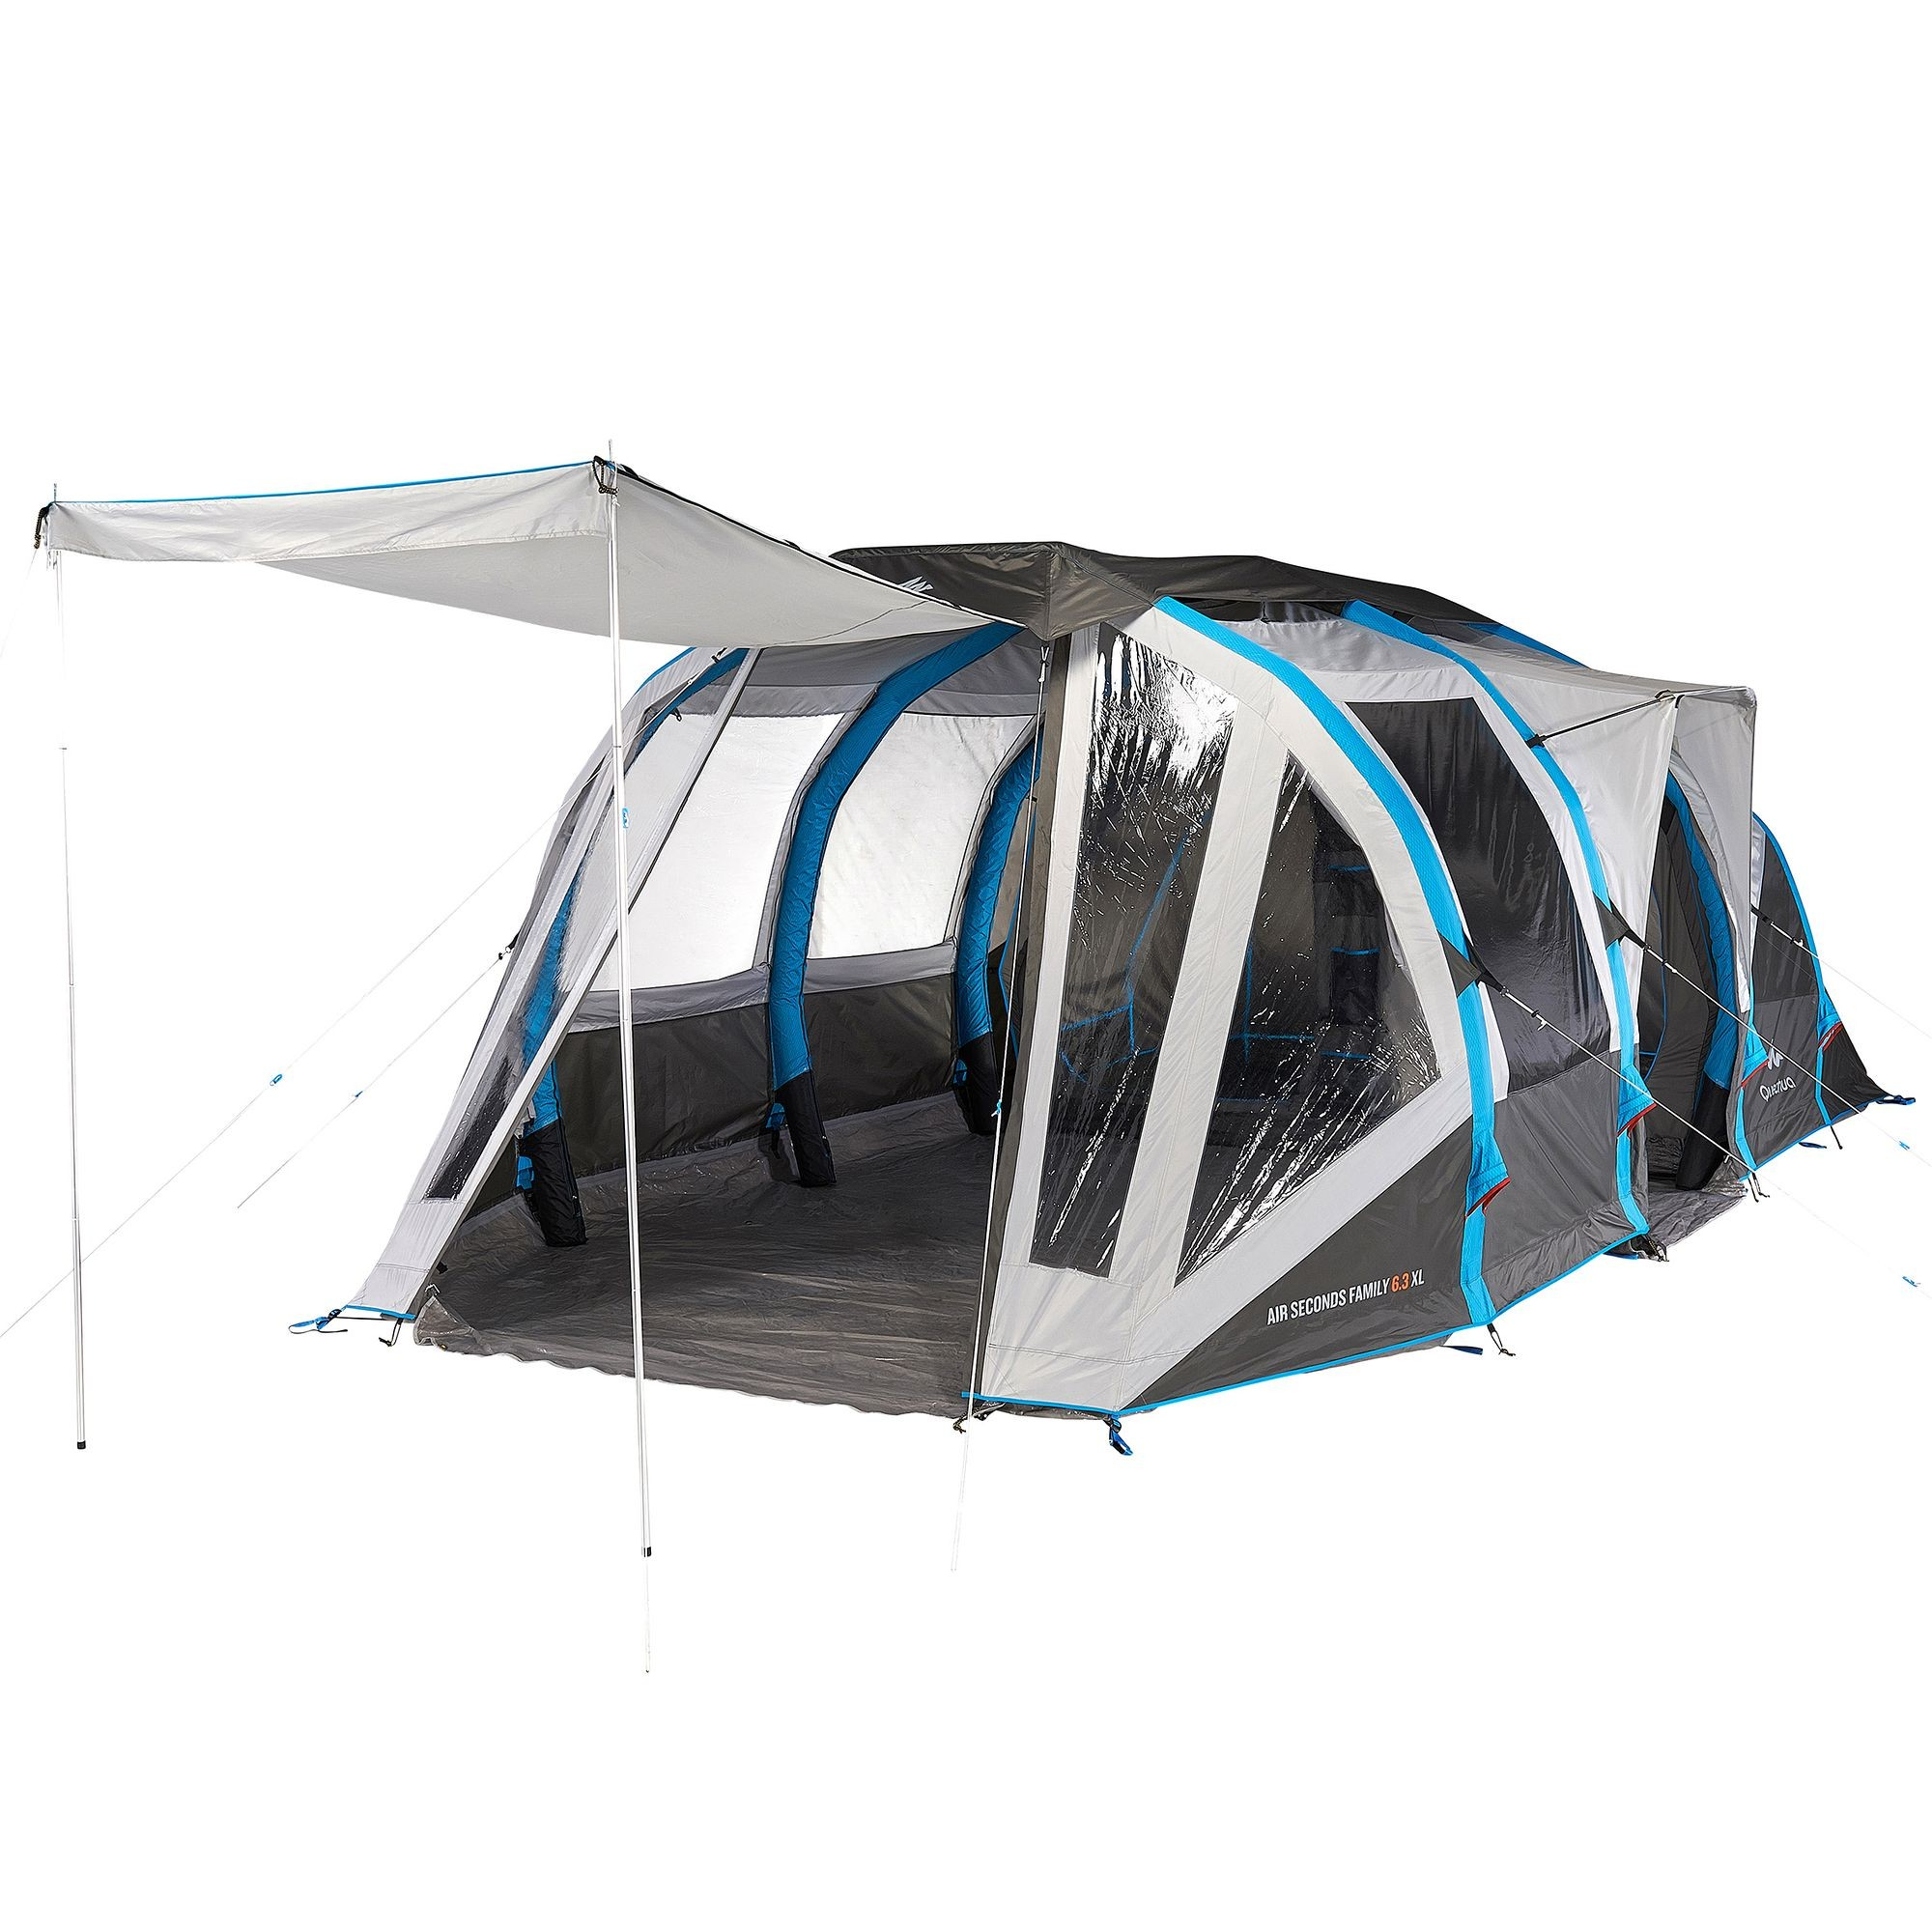 Tente air seconds family 6 3xl quechua tente decathlon for Tente 2 chambres decathlon